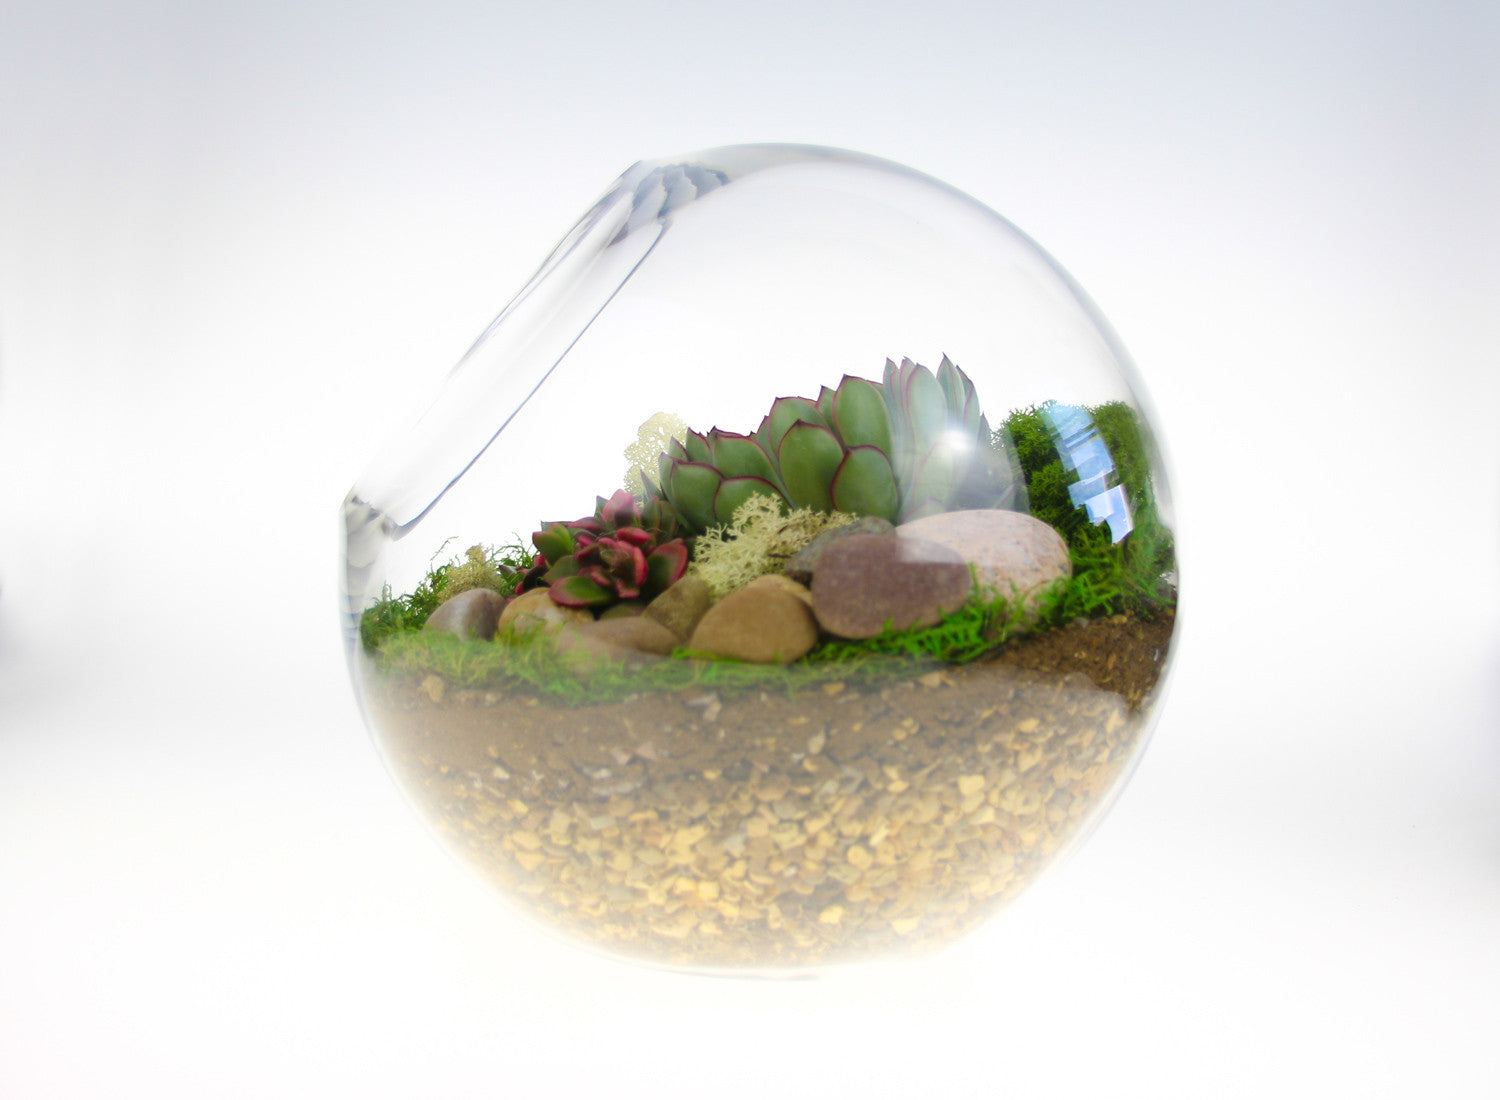 Angled Globe Landscape Terrarium Kit With Living Plants Uk Store